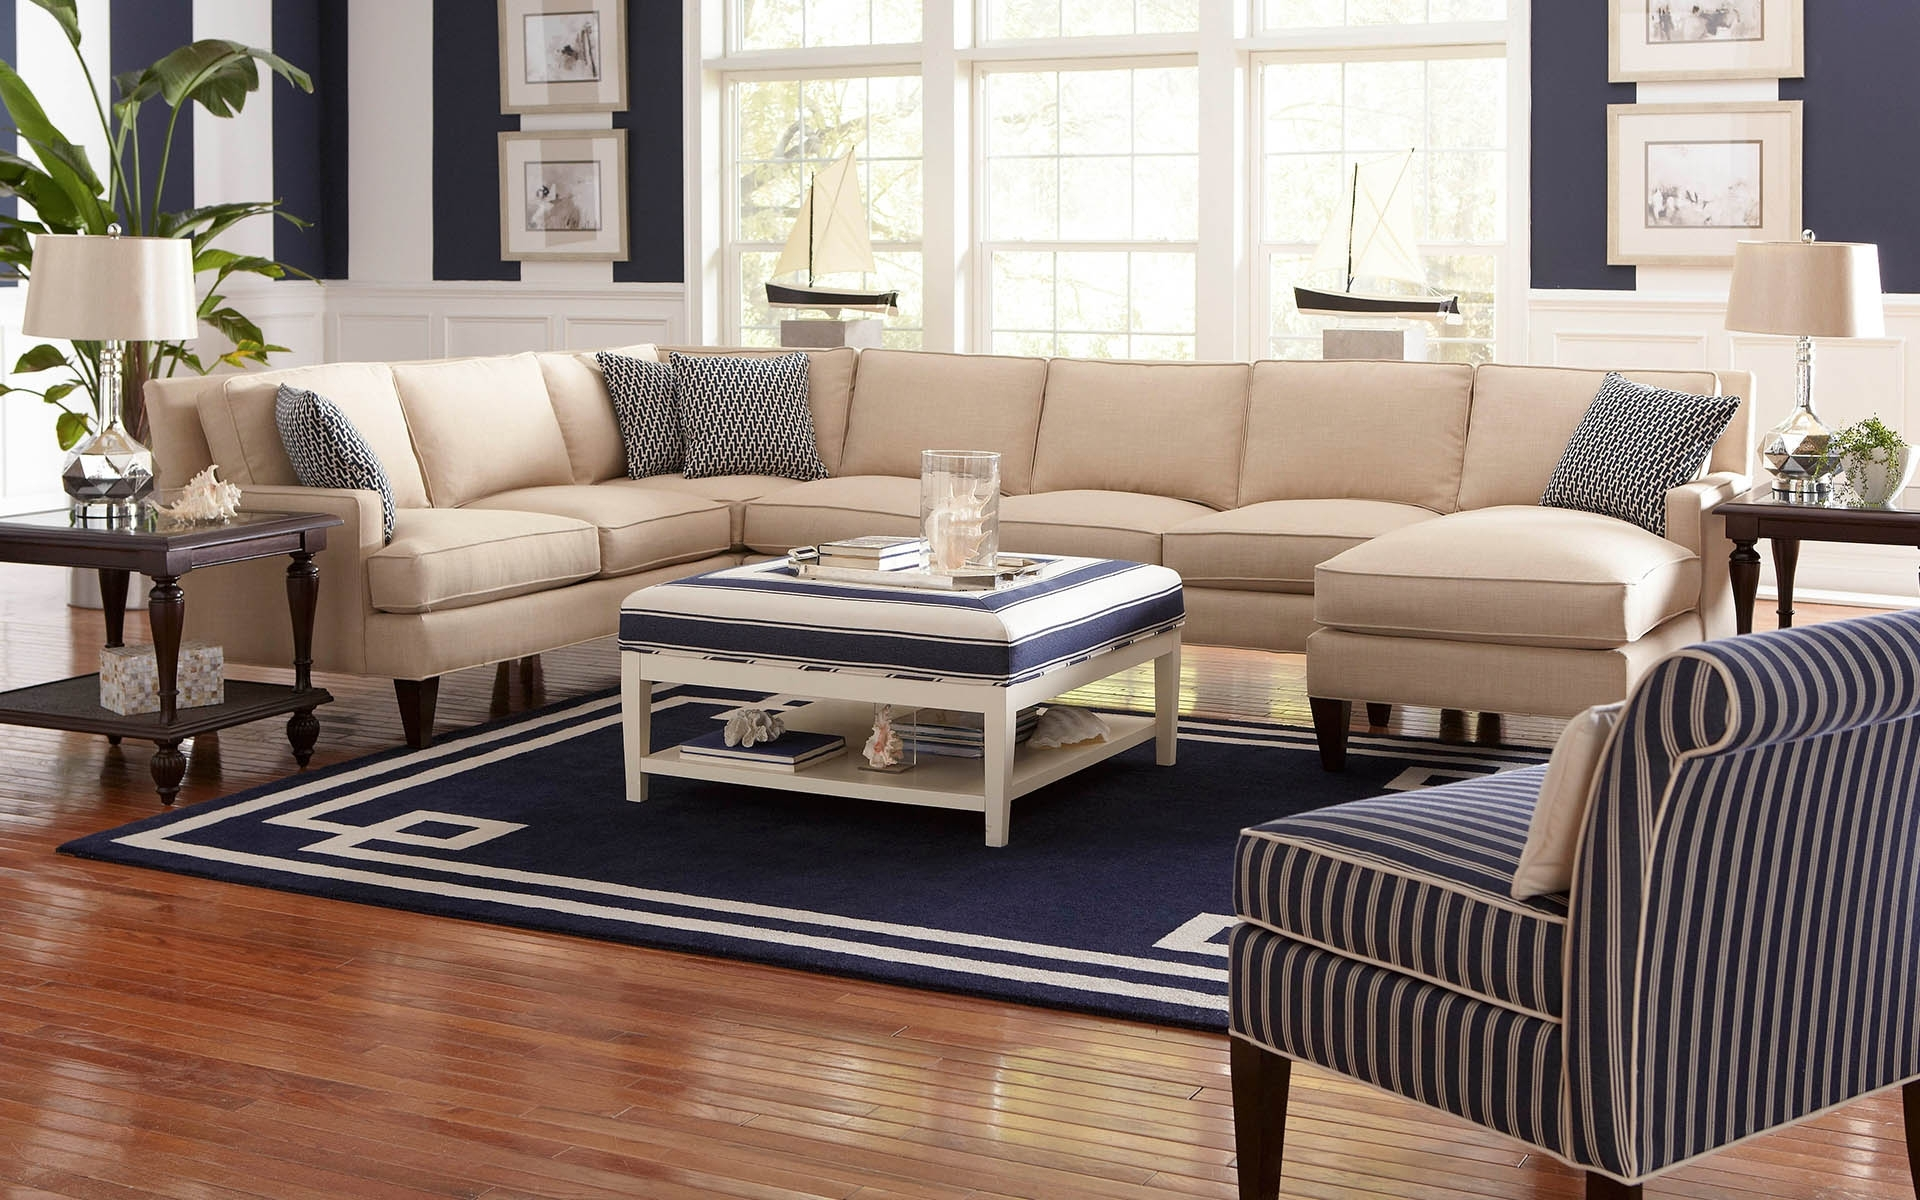 Trendy New Havertys Sectional Sofa 52 On Separate Sectional Sofa With Throughout Havertys Sectional Sofas (View 12 of 15)